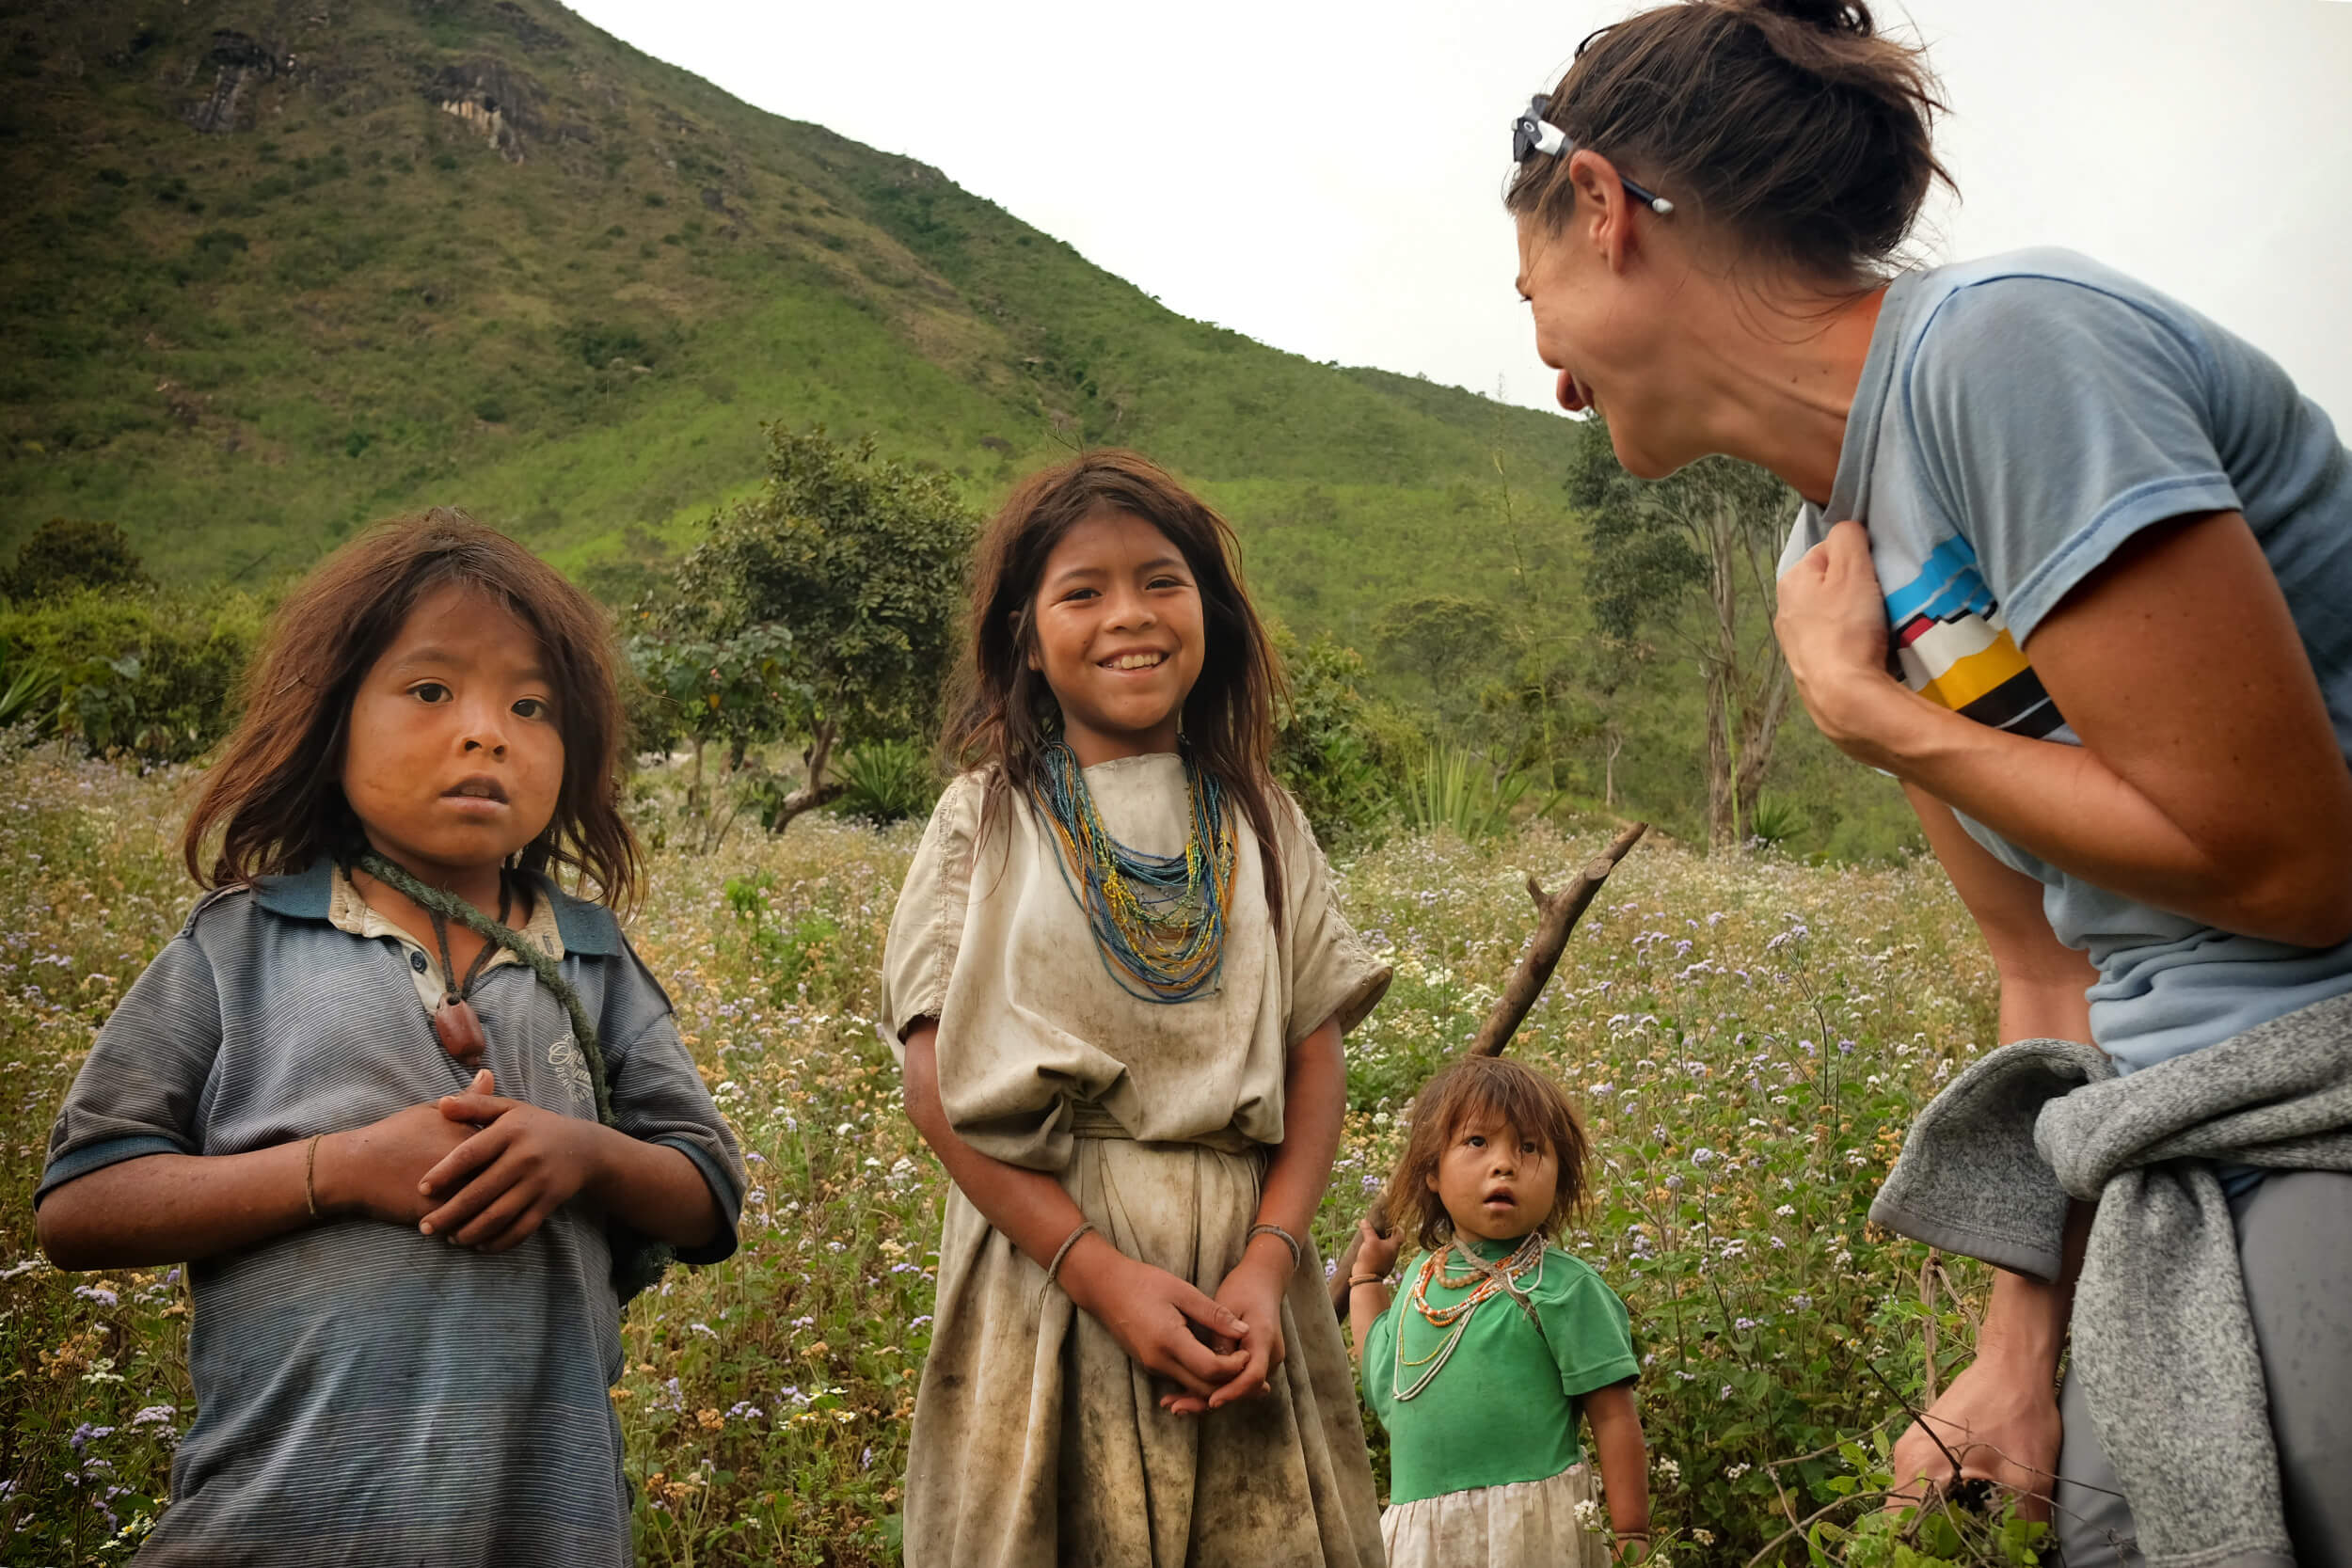 Claire talsking to arhuaco children